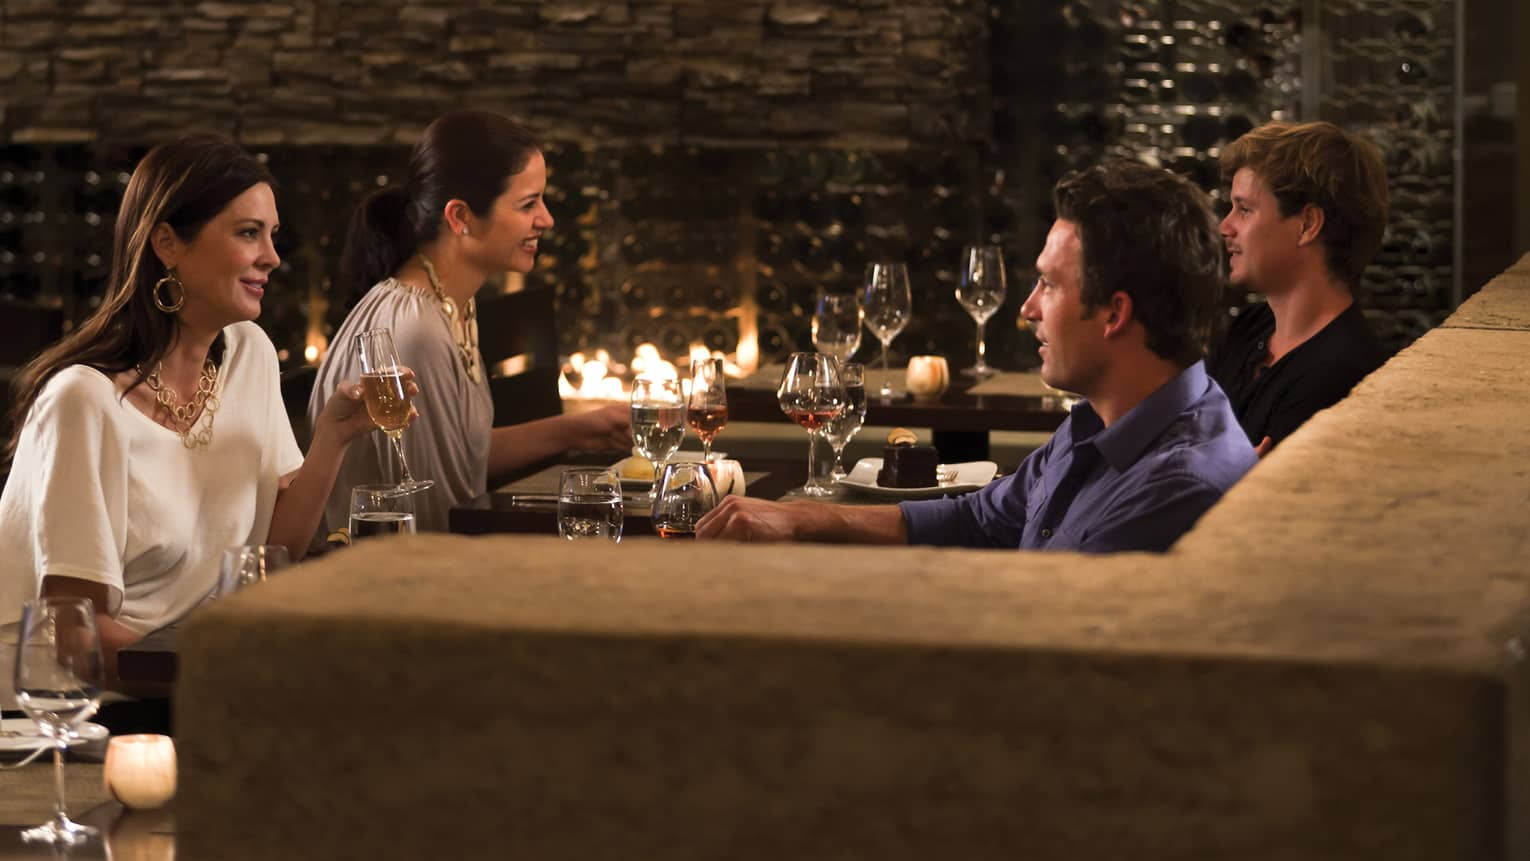 Couples drink wine at dimly-lit Terra restaurant dining tables by fireplace